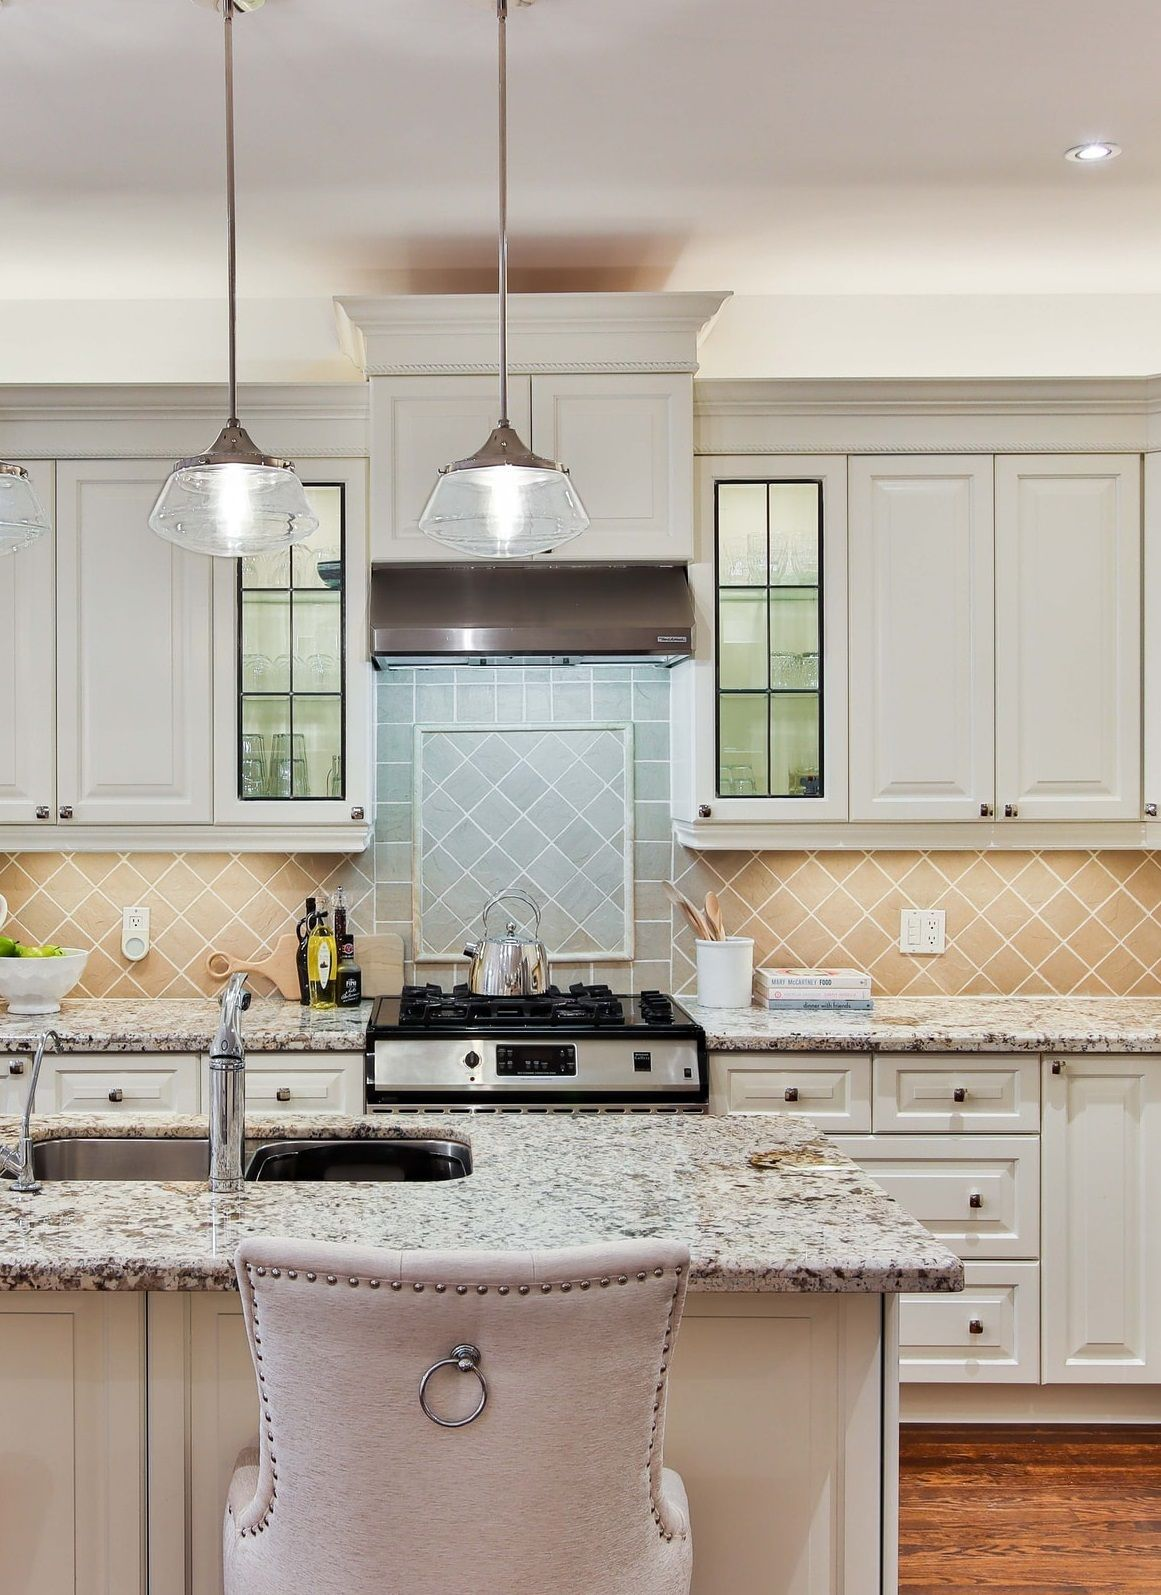 Kitchen Remodel On A Budget 5 Tips You Should Know Kukun In 2020 Affordable Kitchen Remodeling Kitchen Renovation Cost Kitchen Remodel